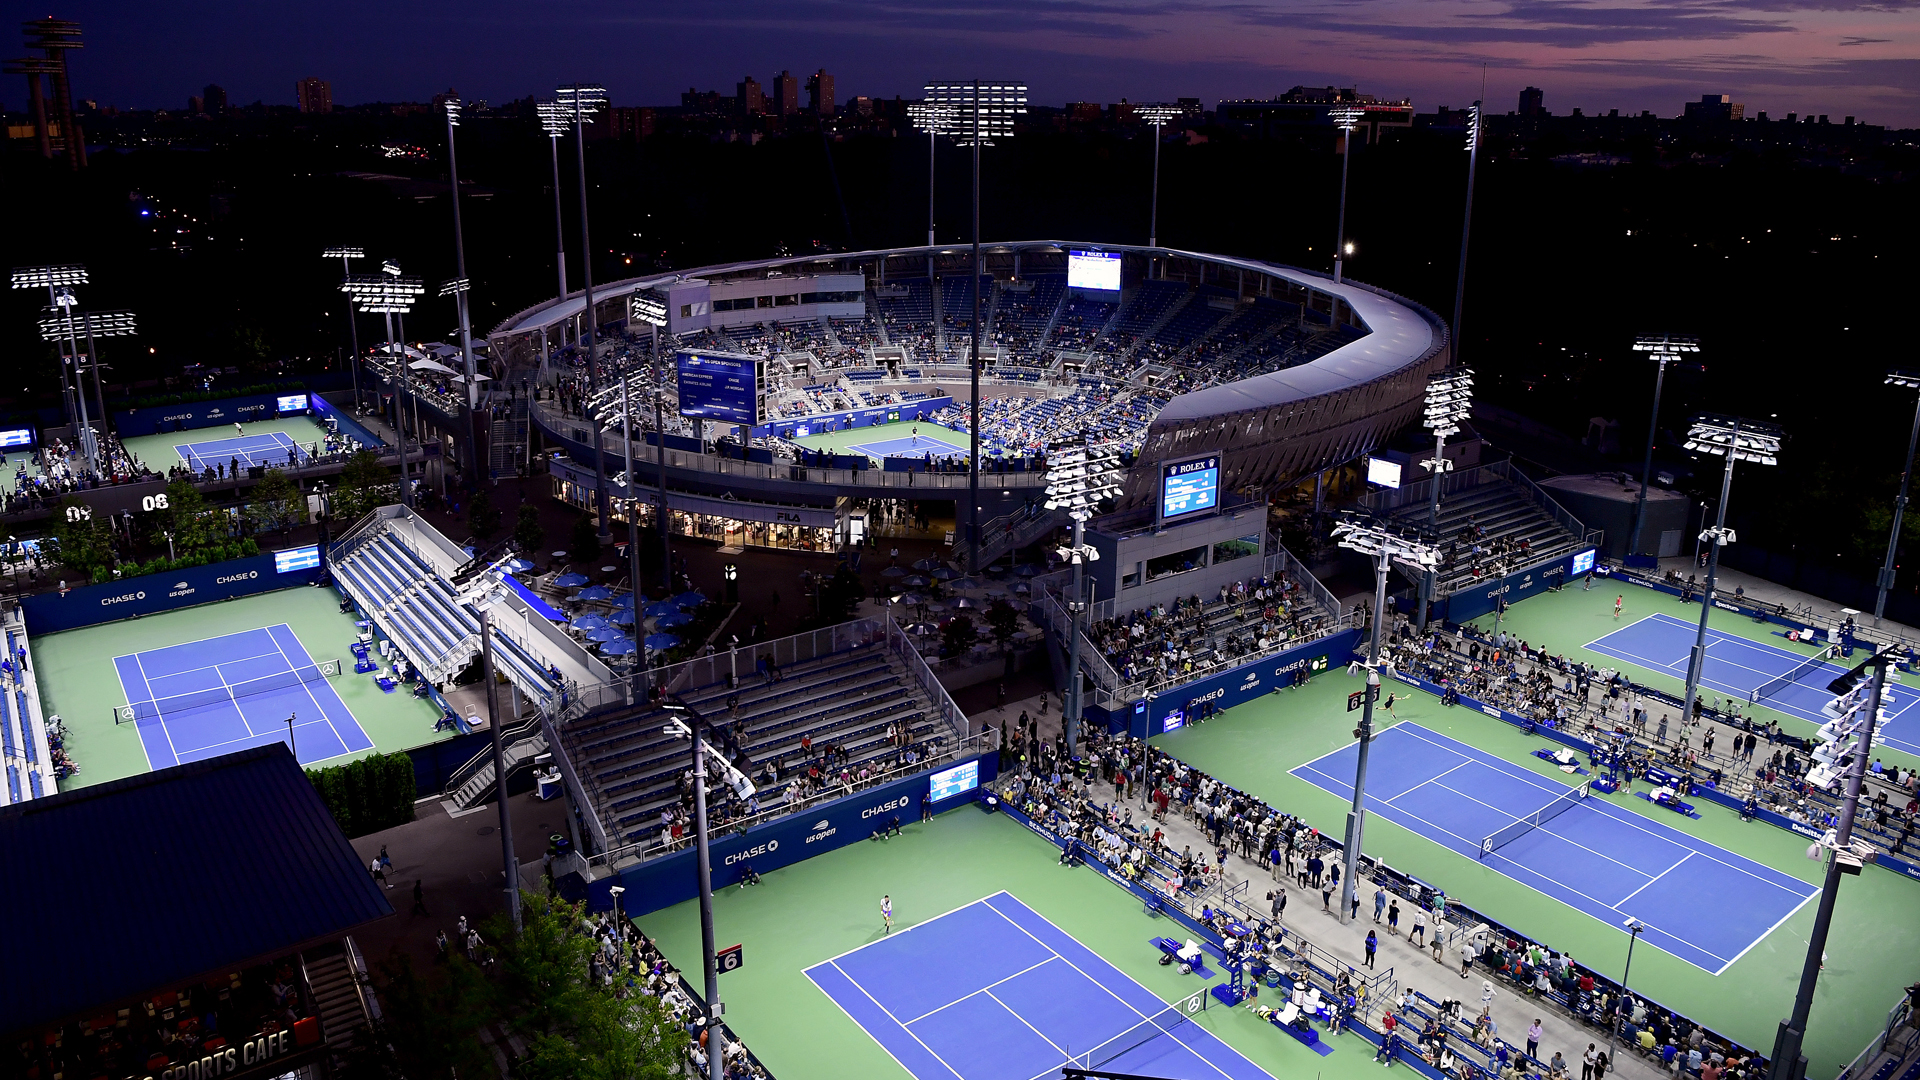 Coronavirus: US Open preparing to go ahead as scheduled, appears to criticise French Open